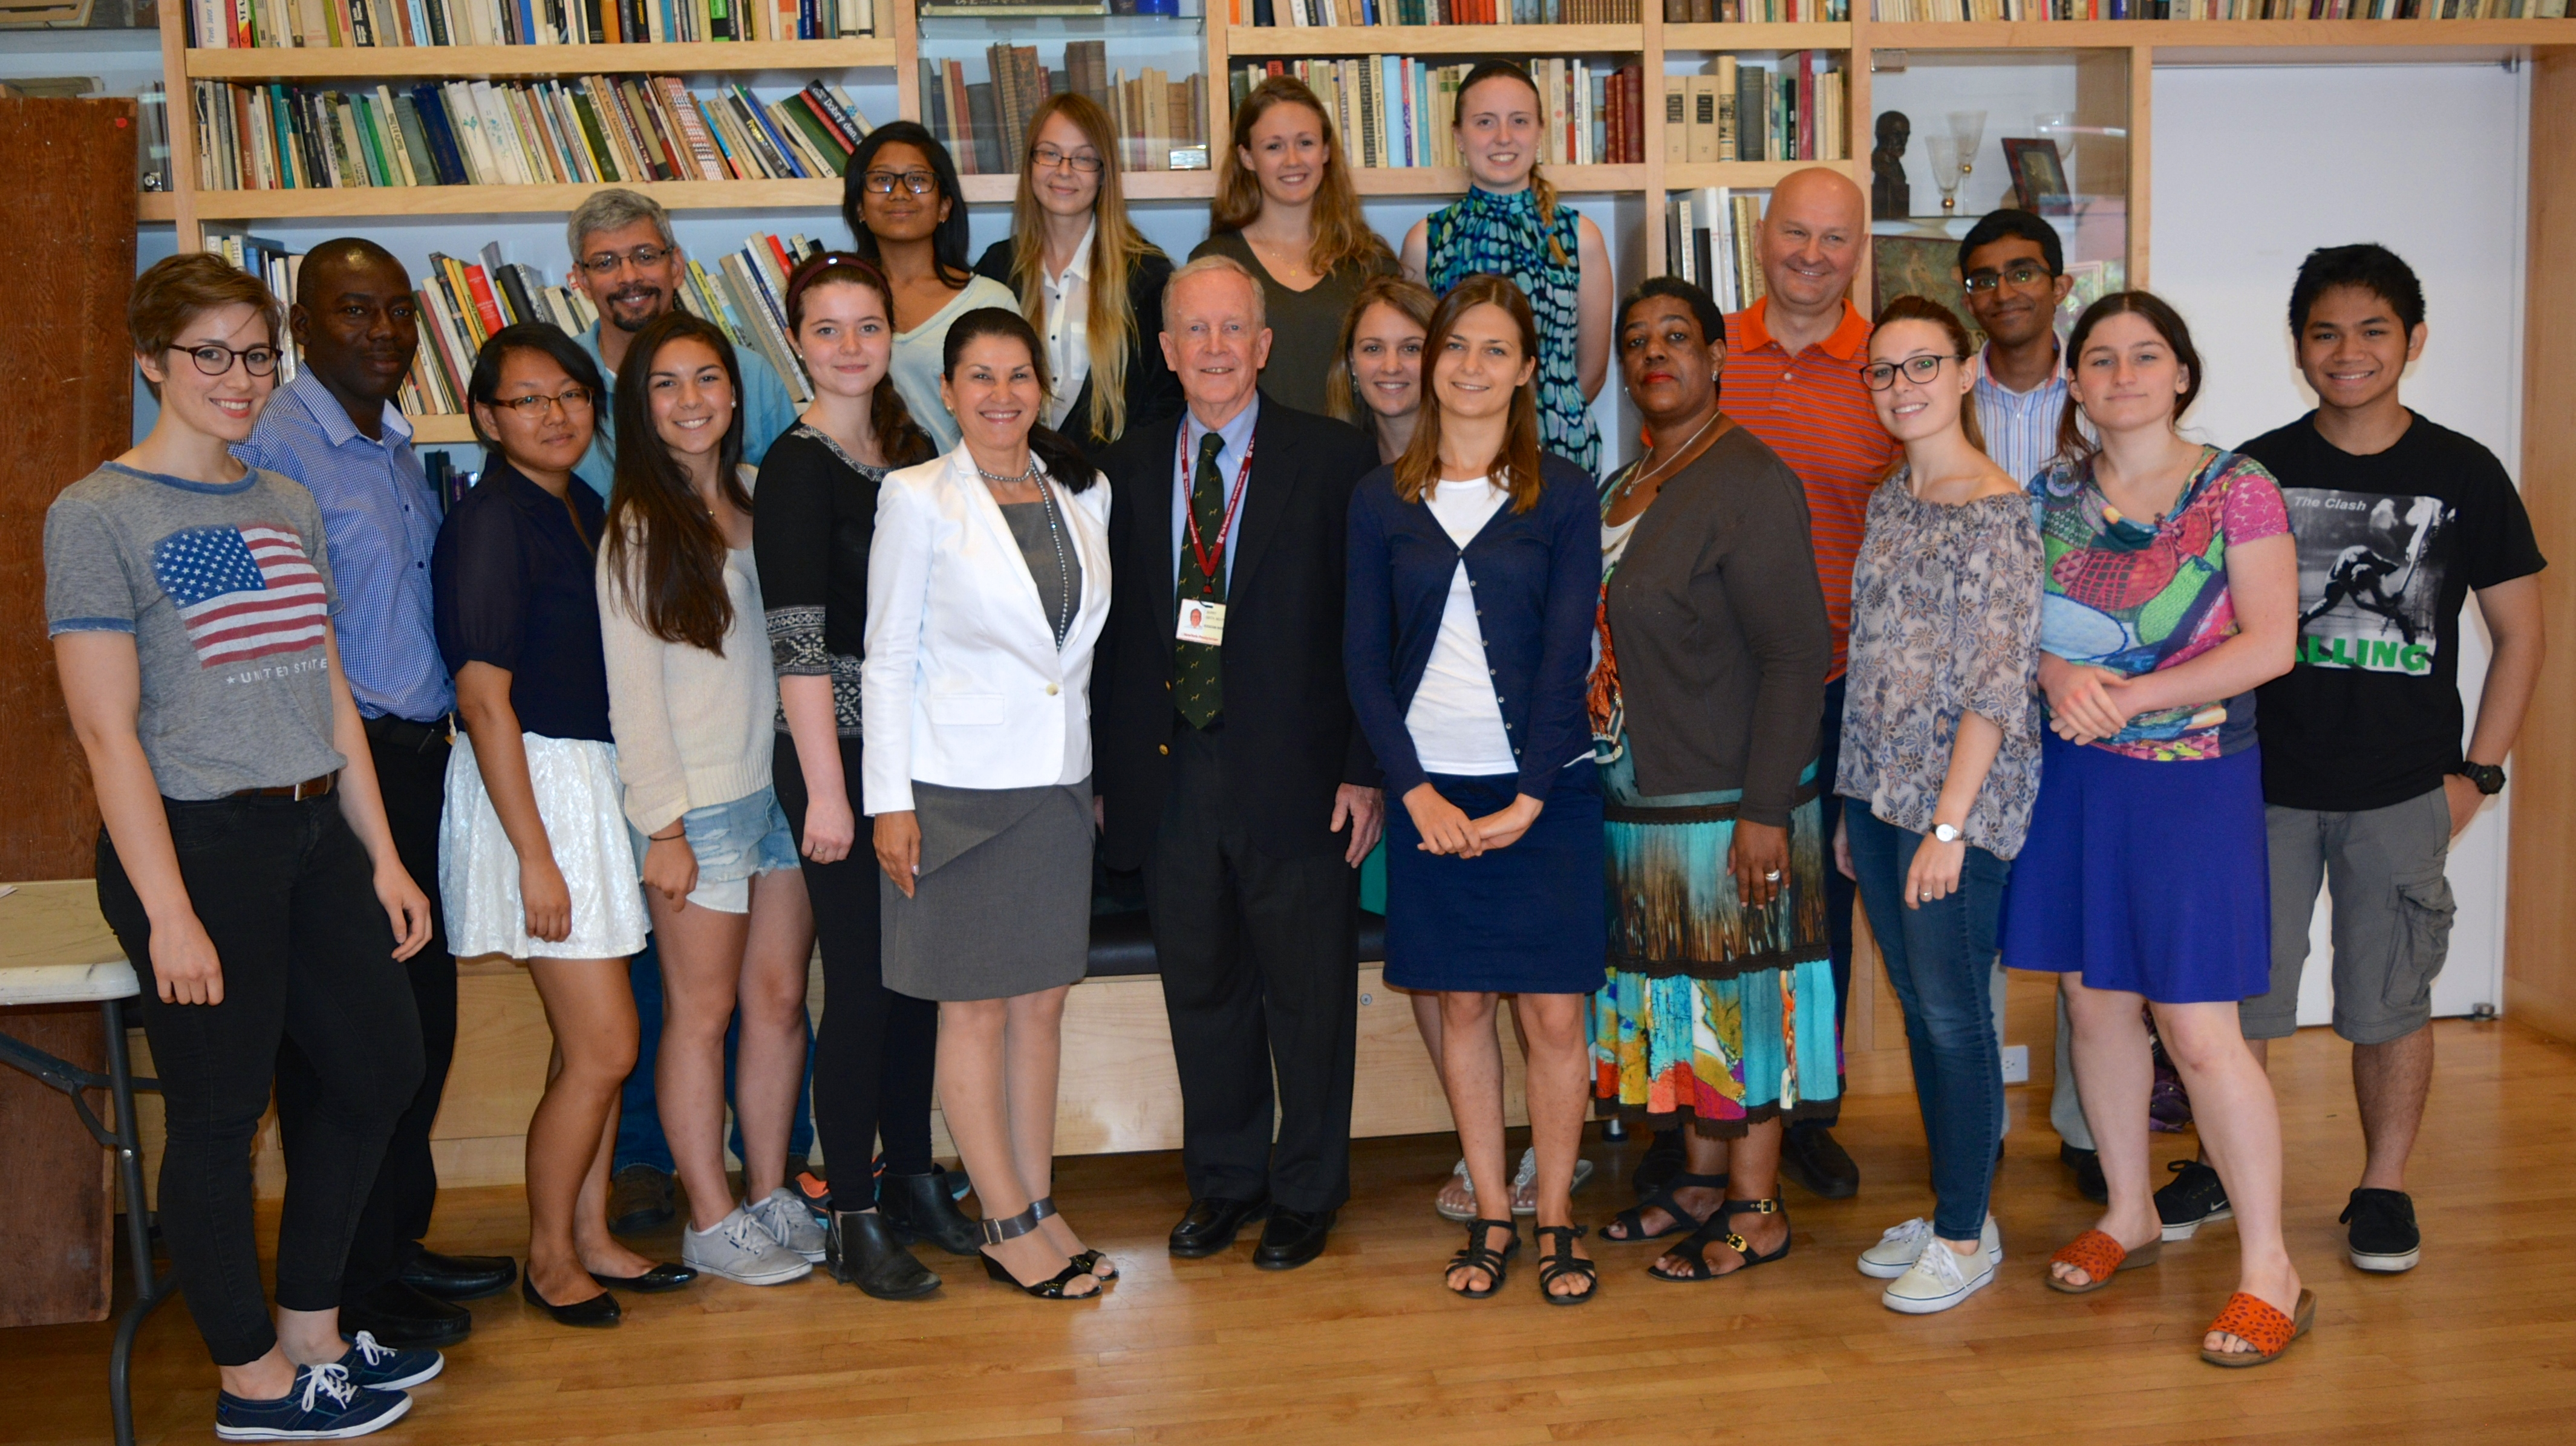 Barry Smith, M.D., Professor of Surgery, Weill Cornell Medical College; Ana Lita Ph.D. and summer school participants